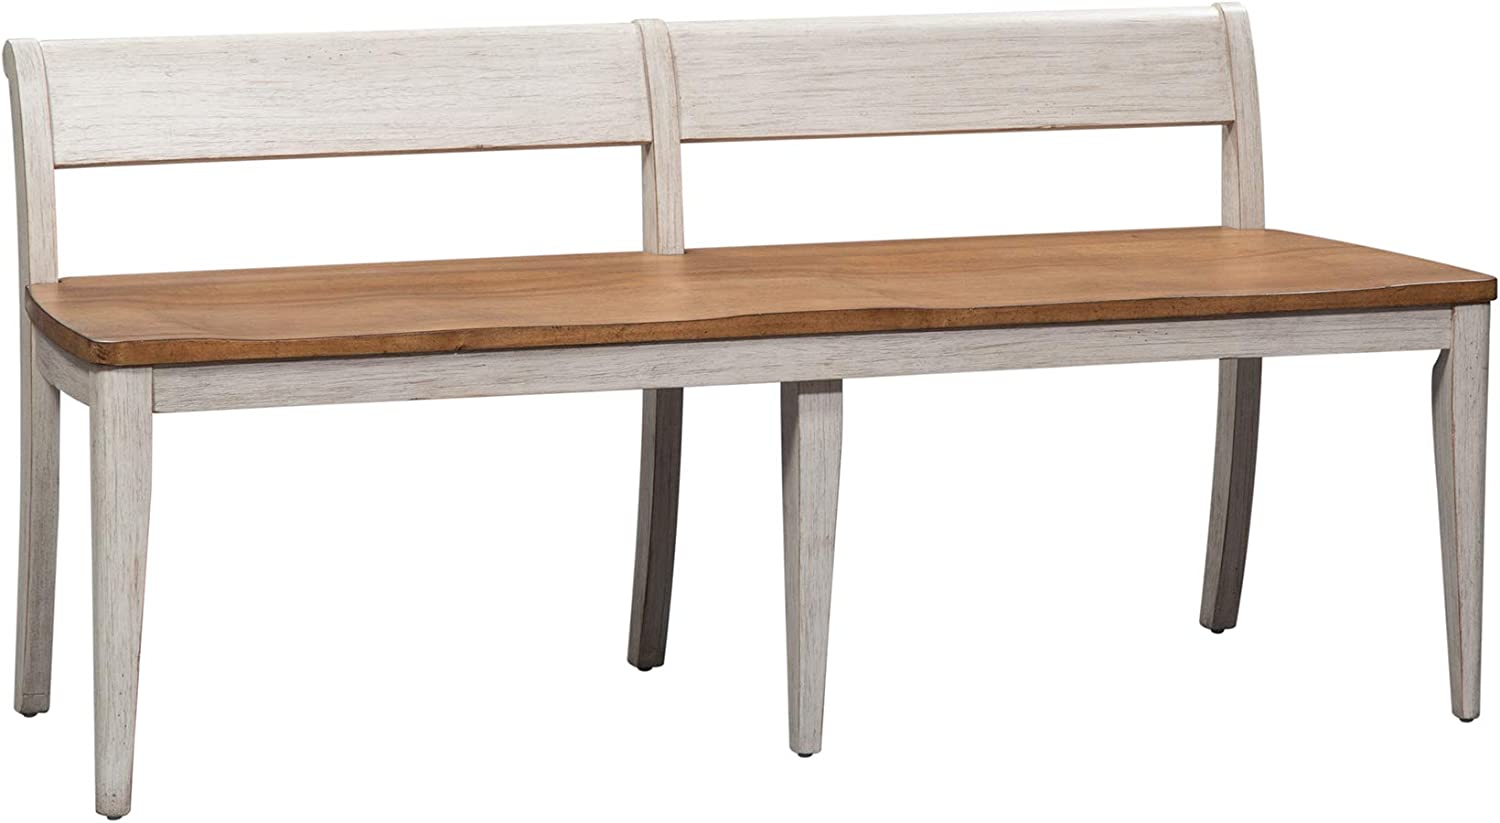 Liberty Furniture Industries Farmhouse Reimagined Bench, W61 x D22 x H28, White